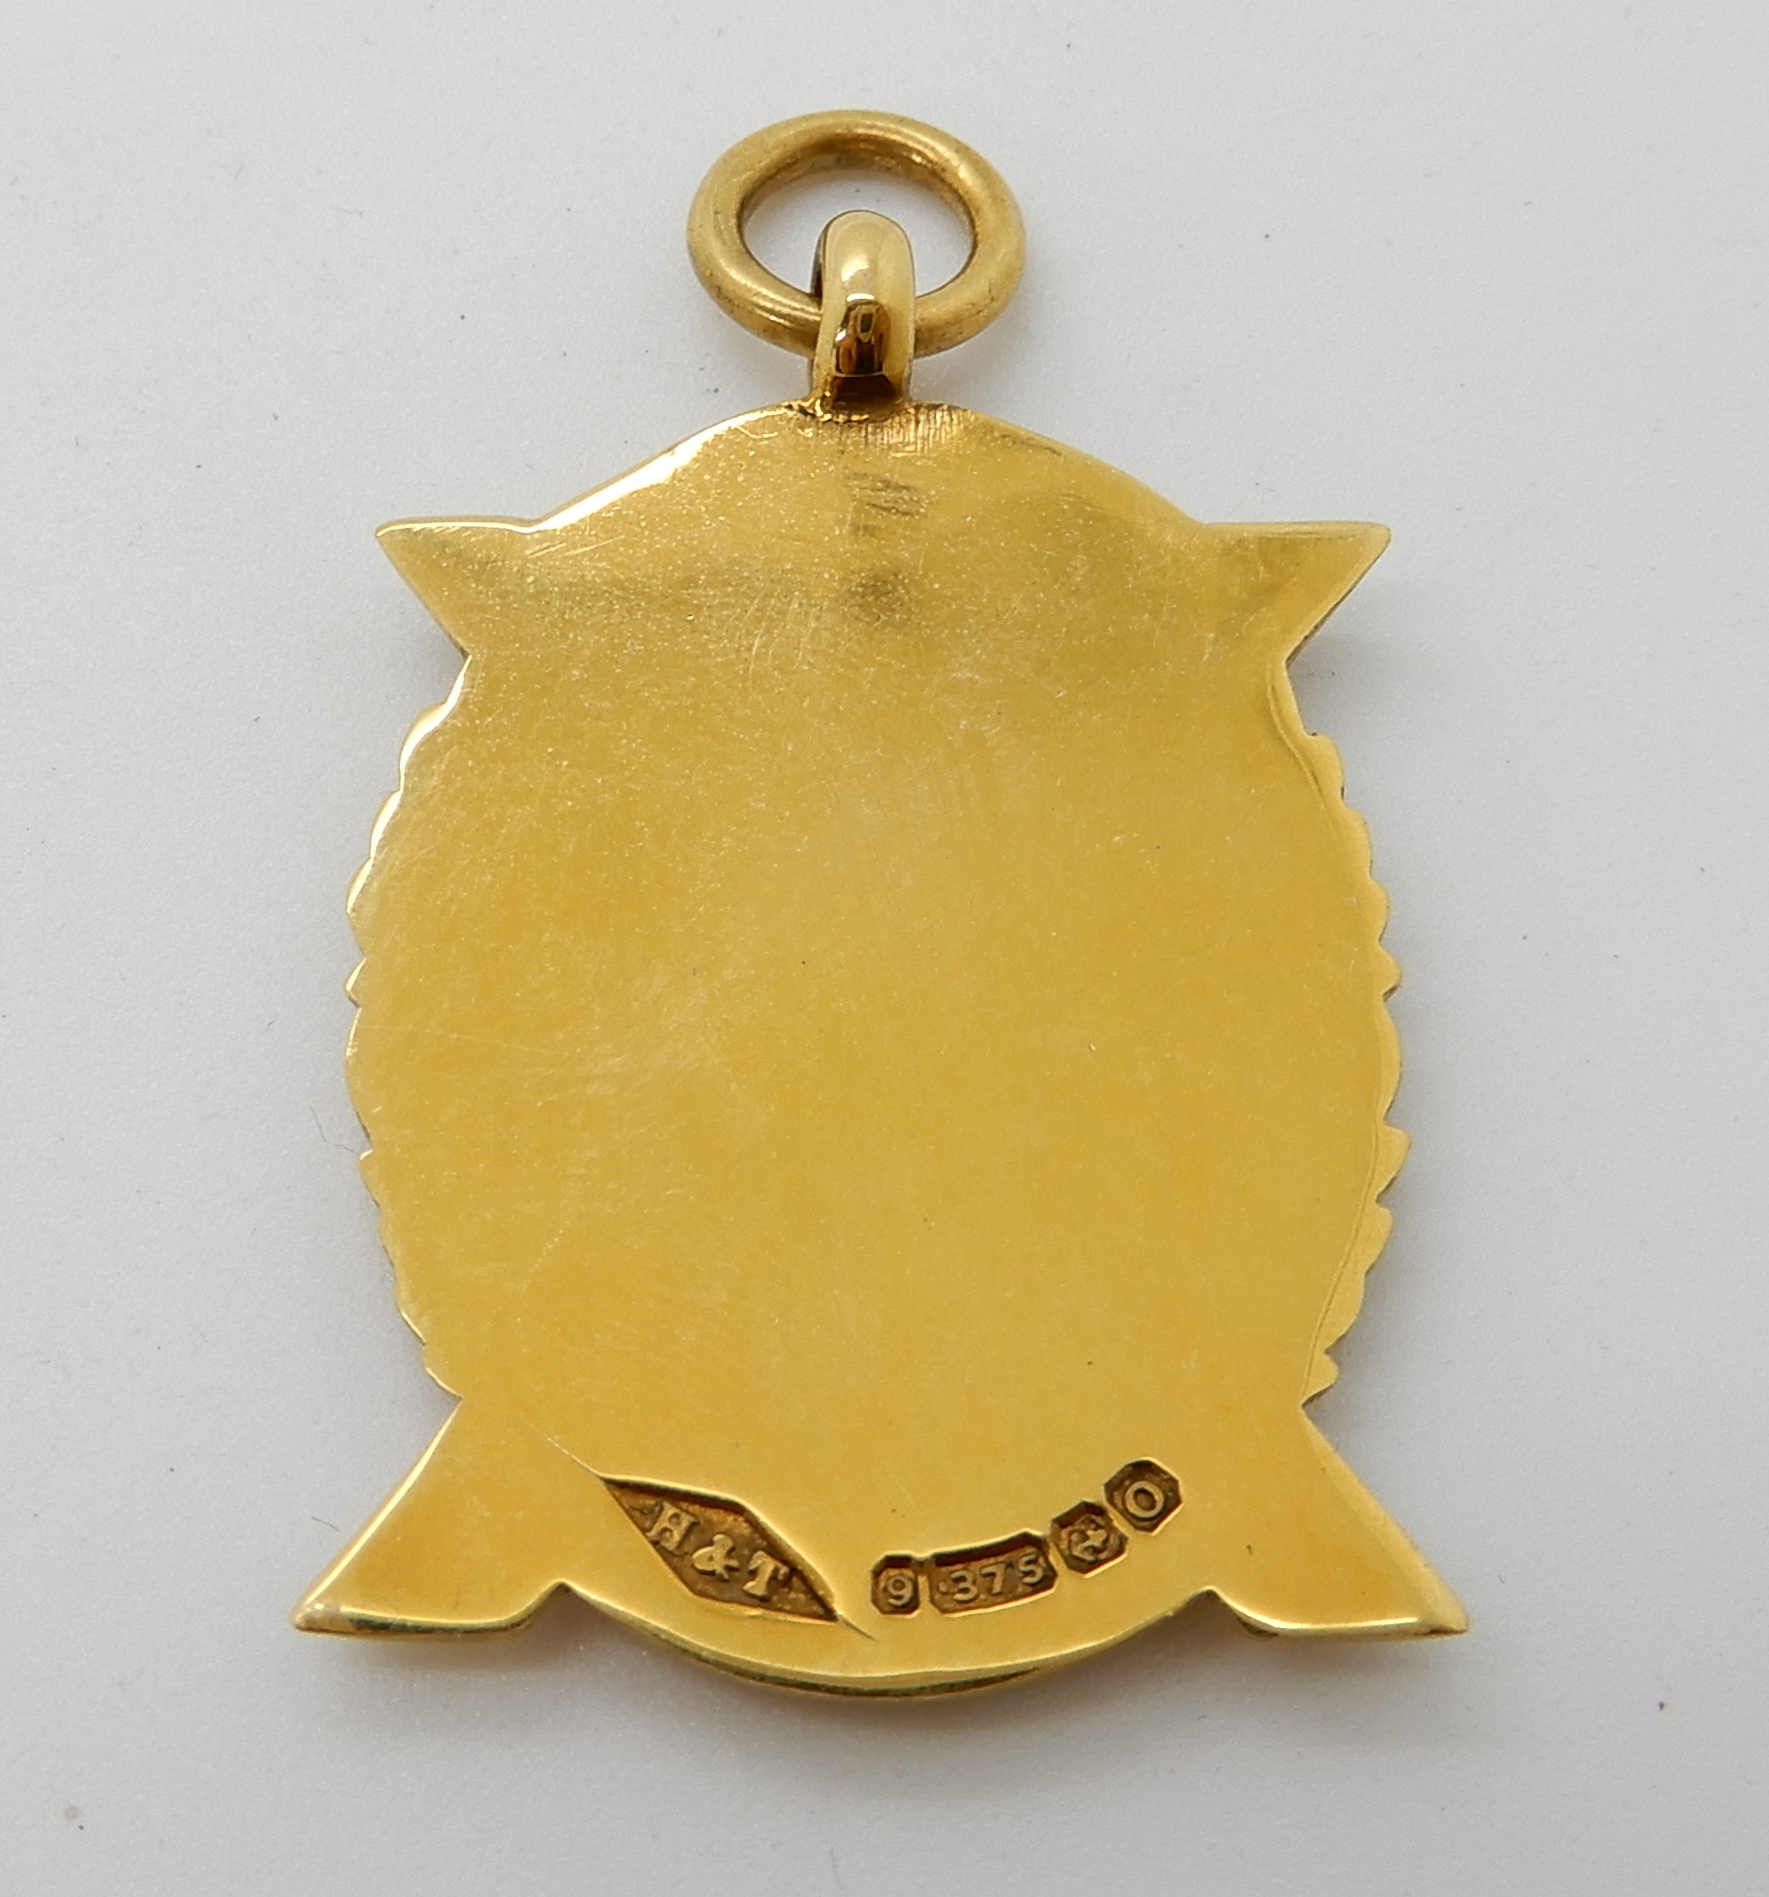 Lot 58 - A 9ct gold Scottish medallion, weight 7.6gms Condition Report: Available upon request